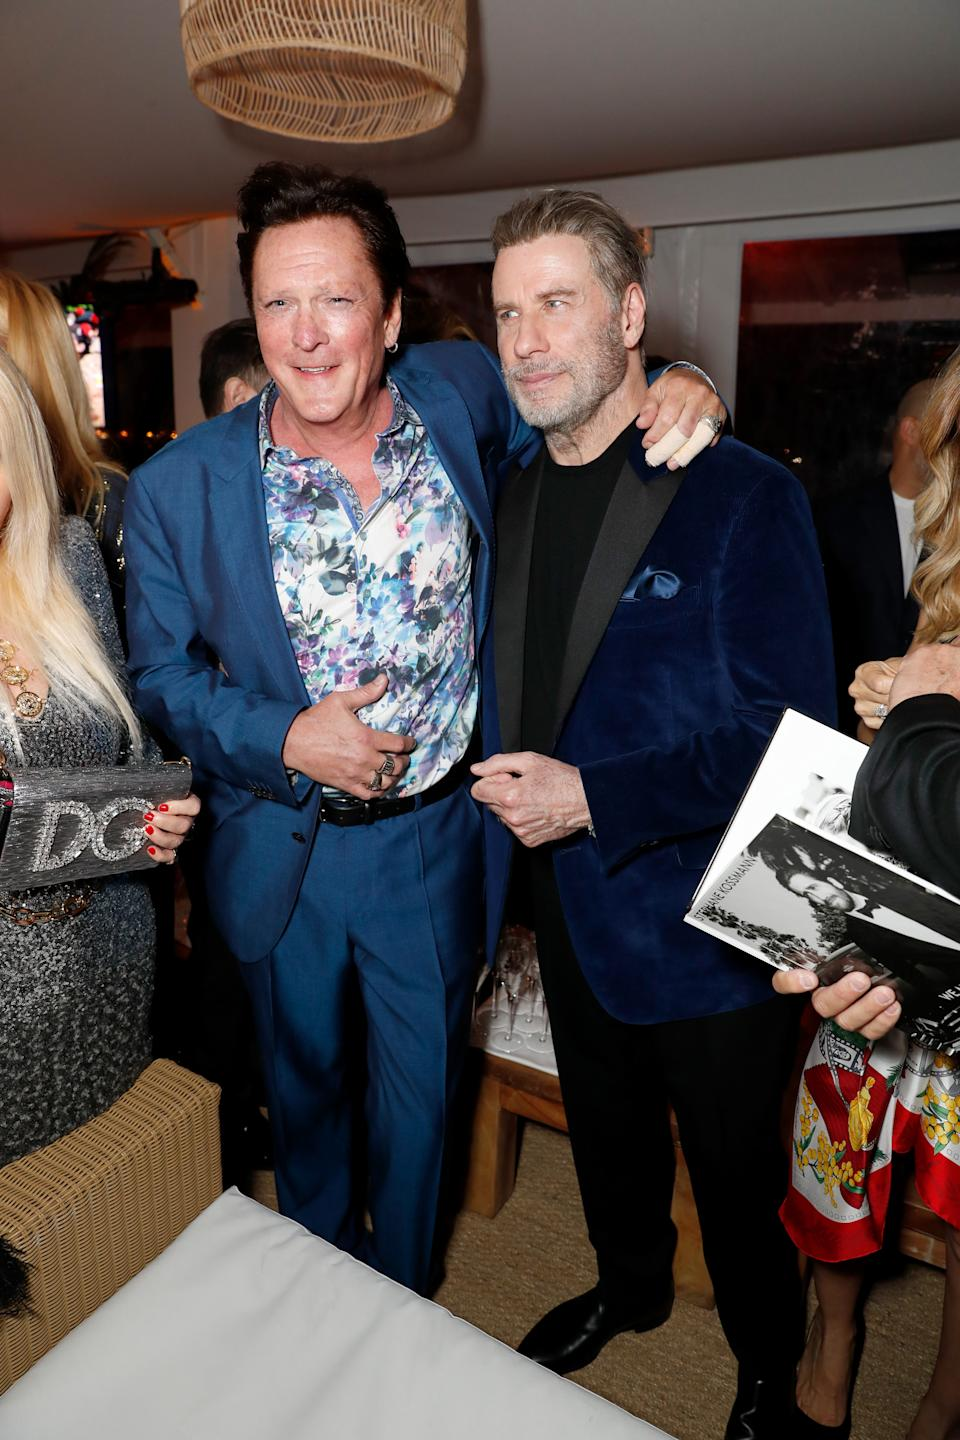 CANNES, FRANCE - MAY 13: Michael Madsen (L) and John Travolta attend the HFPA Event with Particpant Media to Honor the Kailash Satyarthi Children's Foundation in partnership with Renault at Nikki Beach on May 13, 2018 in Cannes, France.  (Photo by David M. Benett/Dave Benett/Getty Images for Nikki Beach)